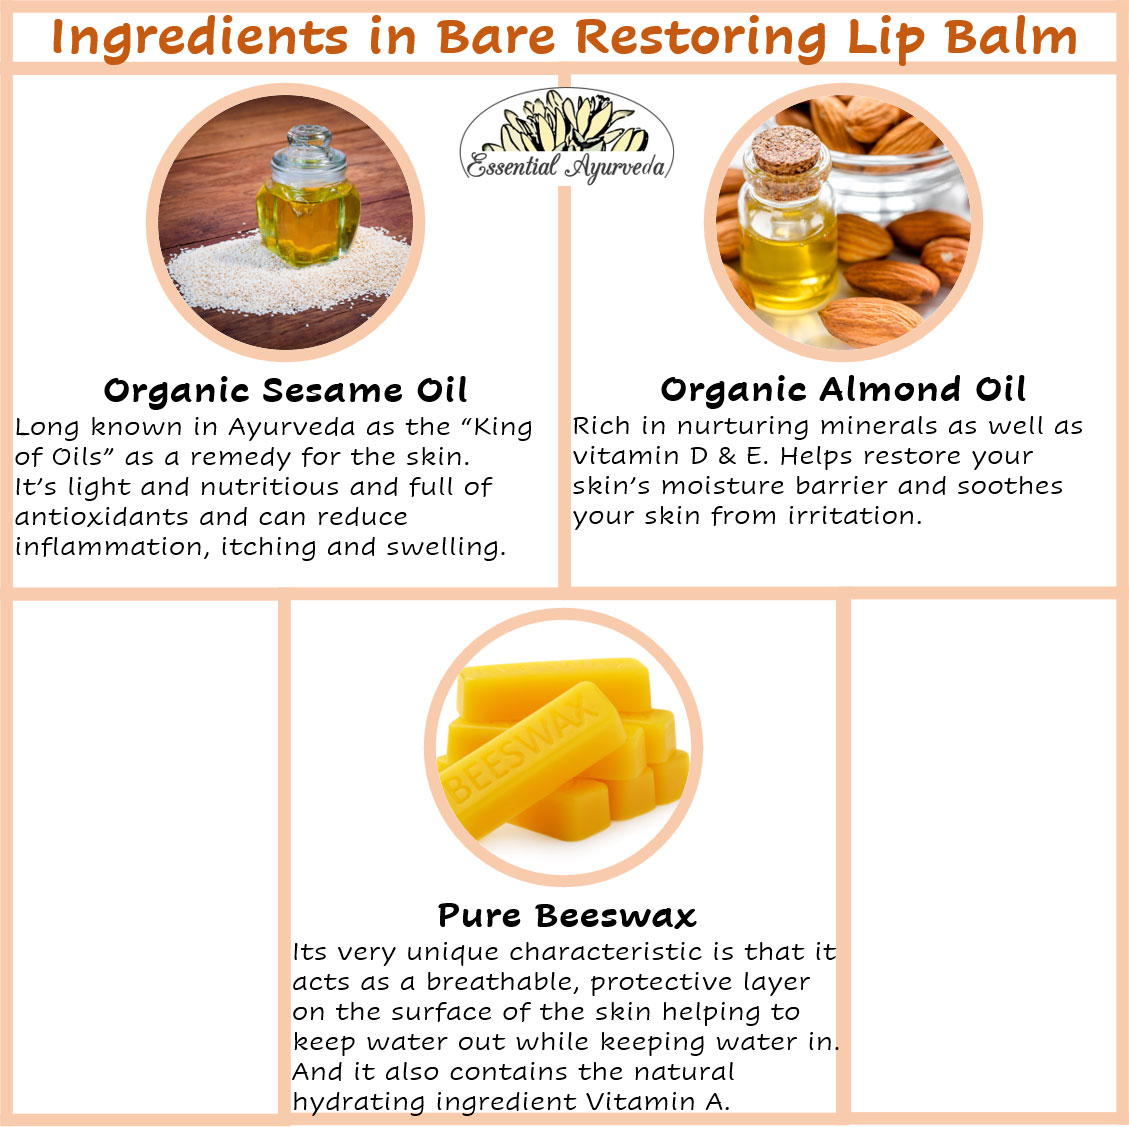 ingredients-in-bare-restoring-lip-balm-1.jpg